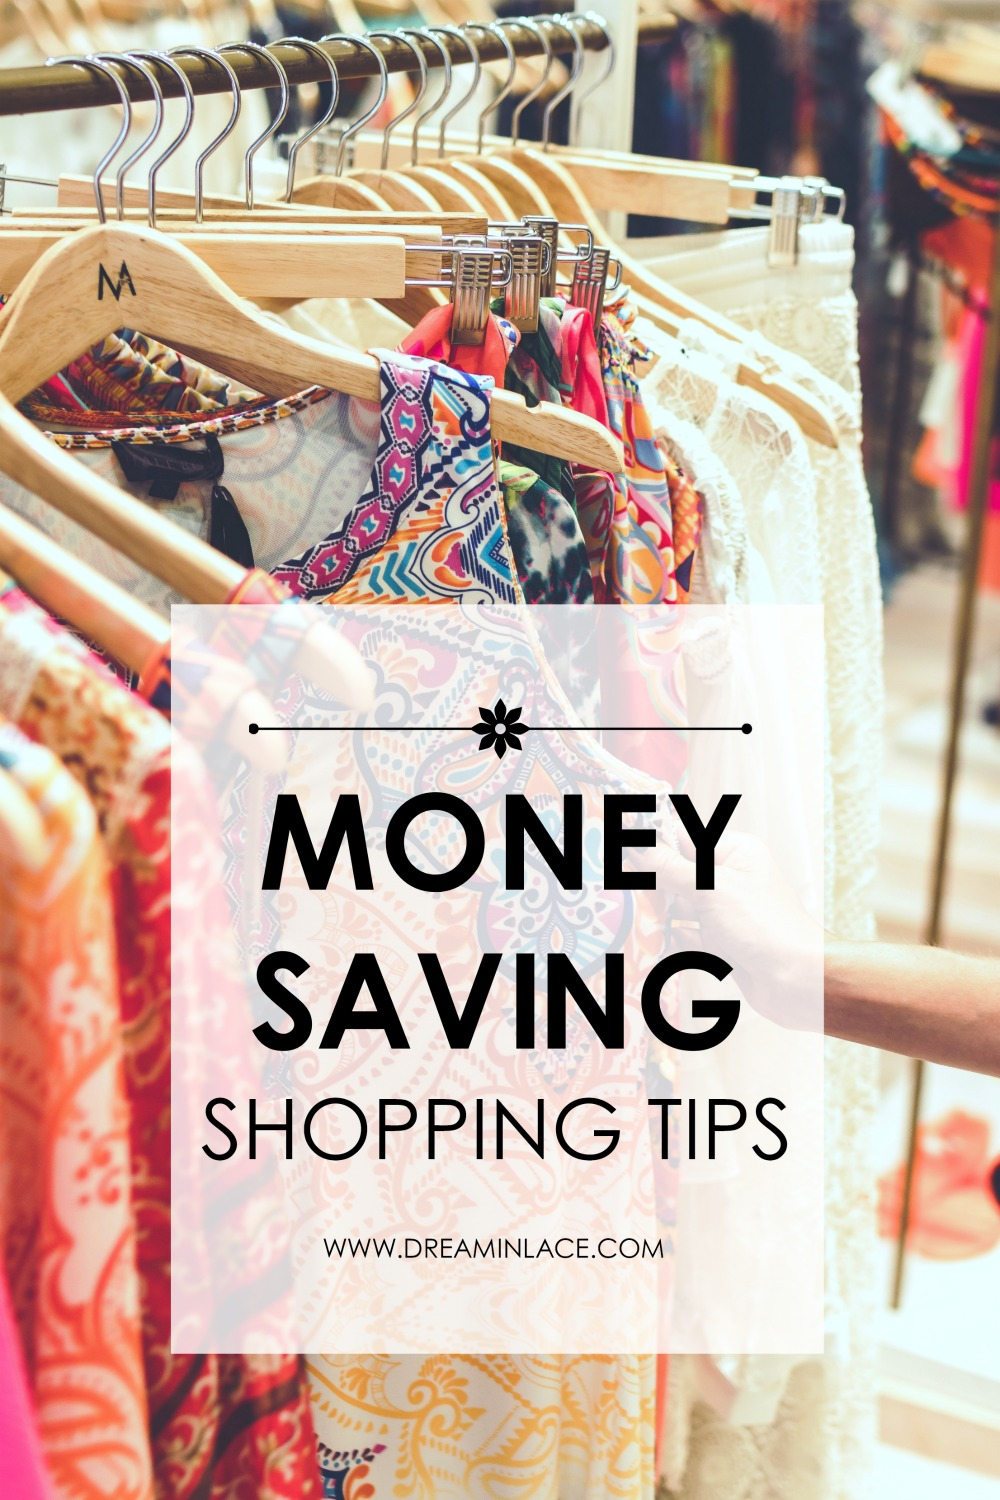 Money-Saving Shopping Tips